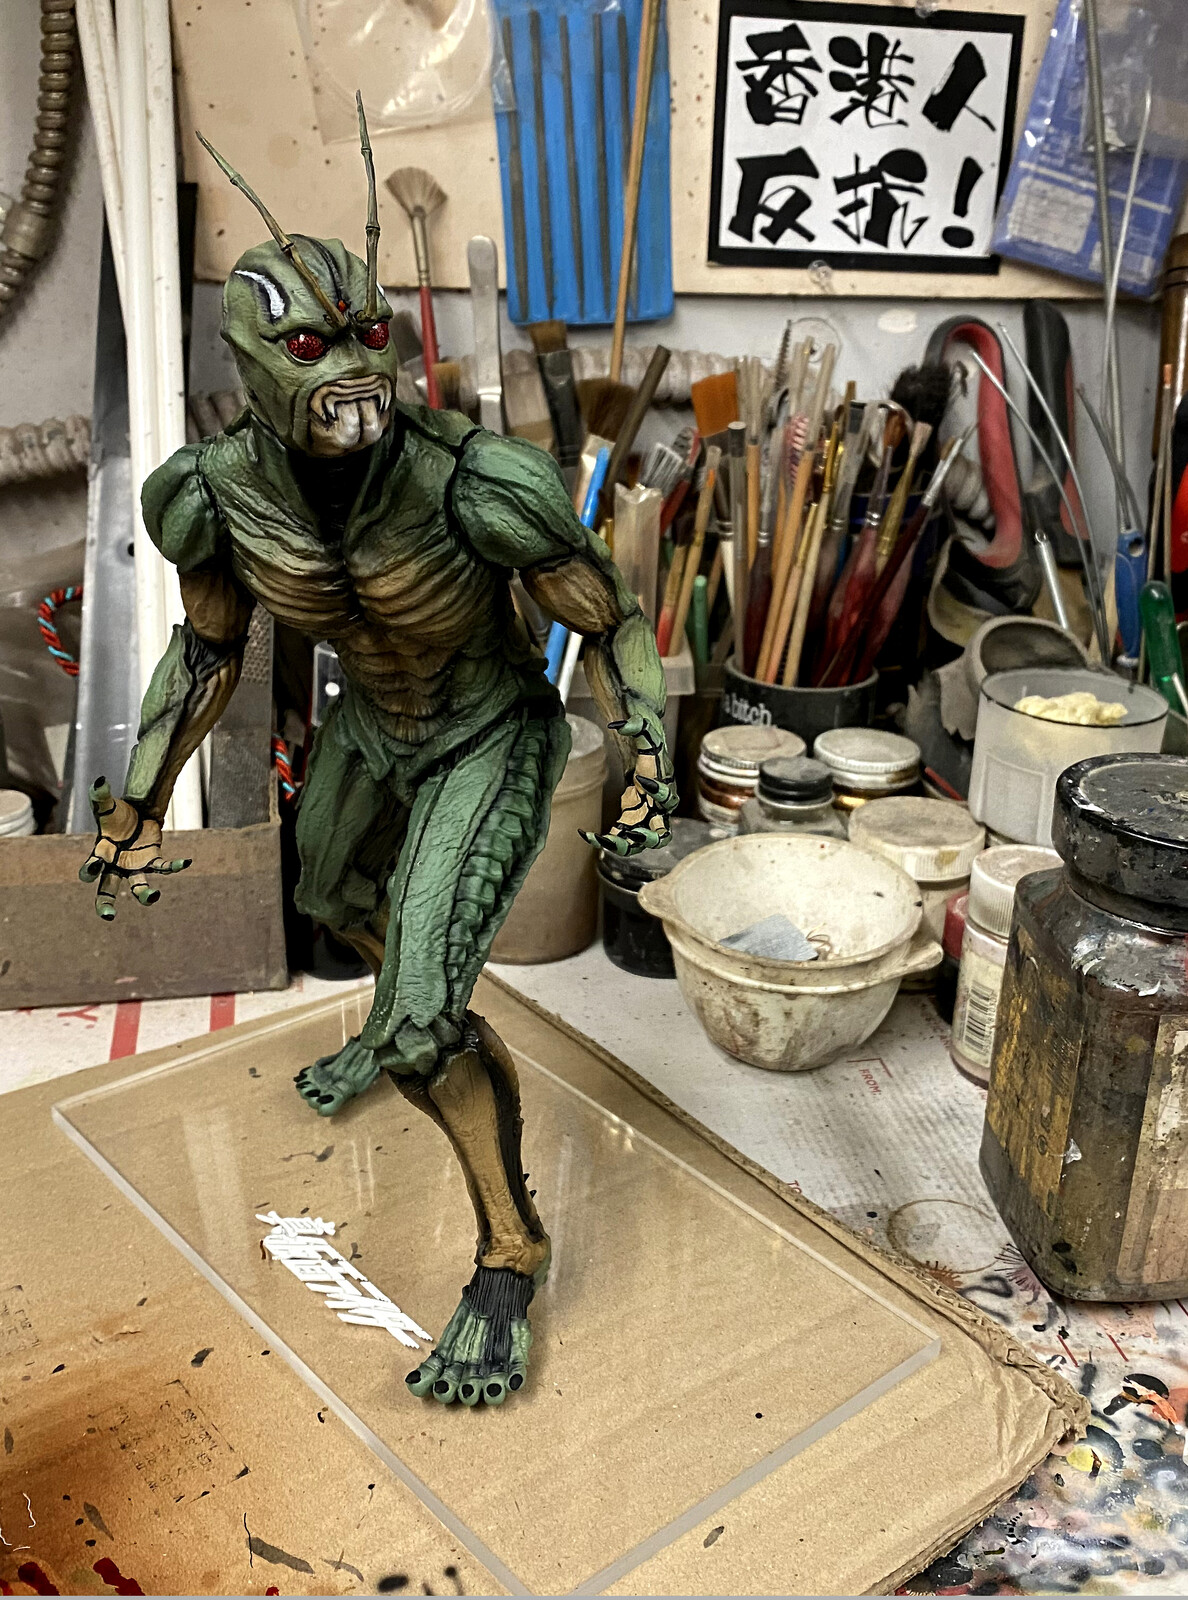 W.I.P. 真・仮面ライダー  Shin Kamen Rider 1:6 scale Art Statue  https://www.solidart.club/